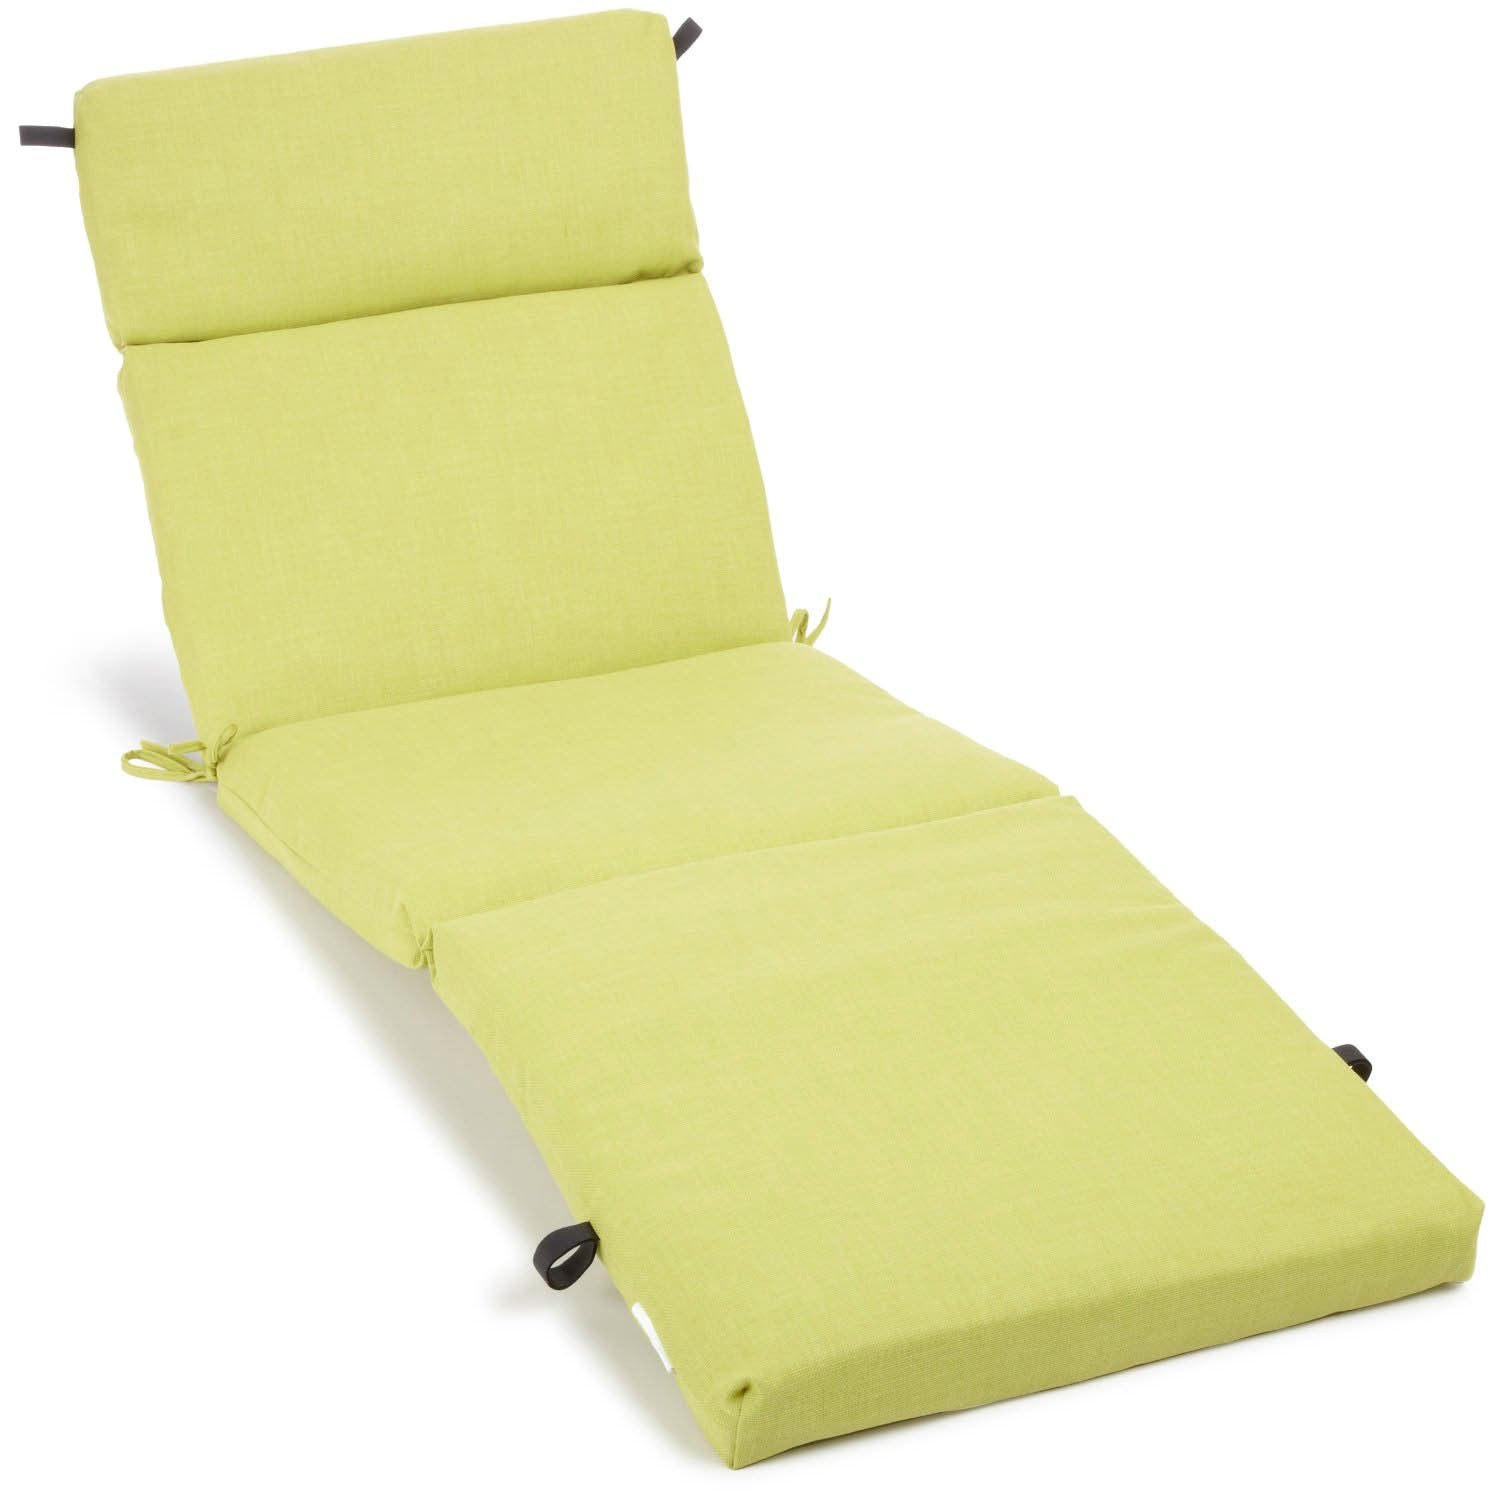 Blazing needles 72 inch all weather solid outdoor chaise for Blazing needles chaise cushion